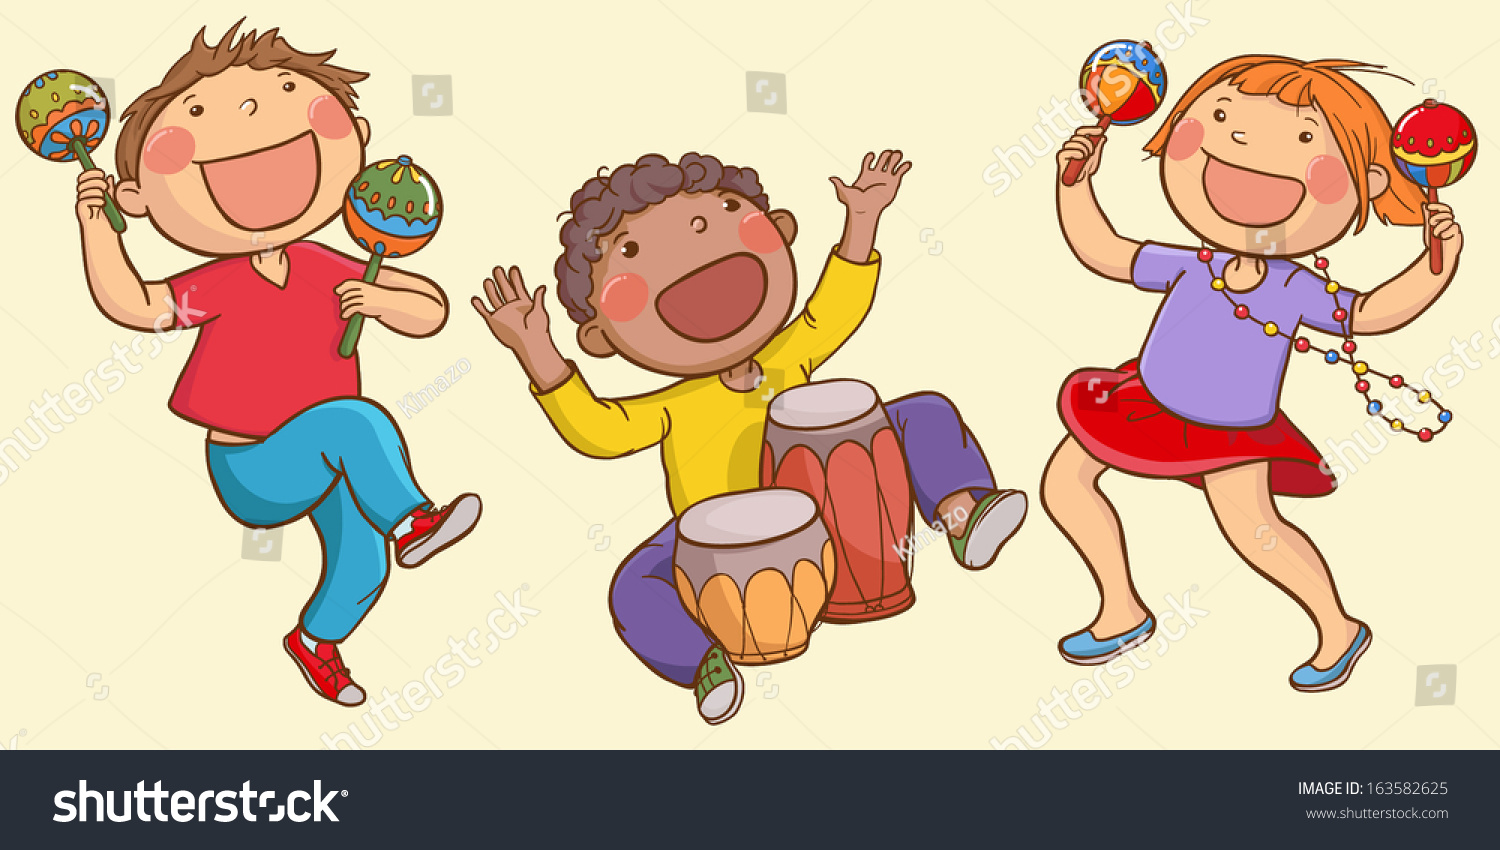 illustration kids playing ethnic musical instruments stock vector